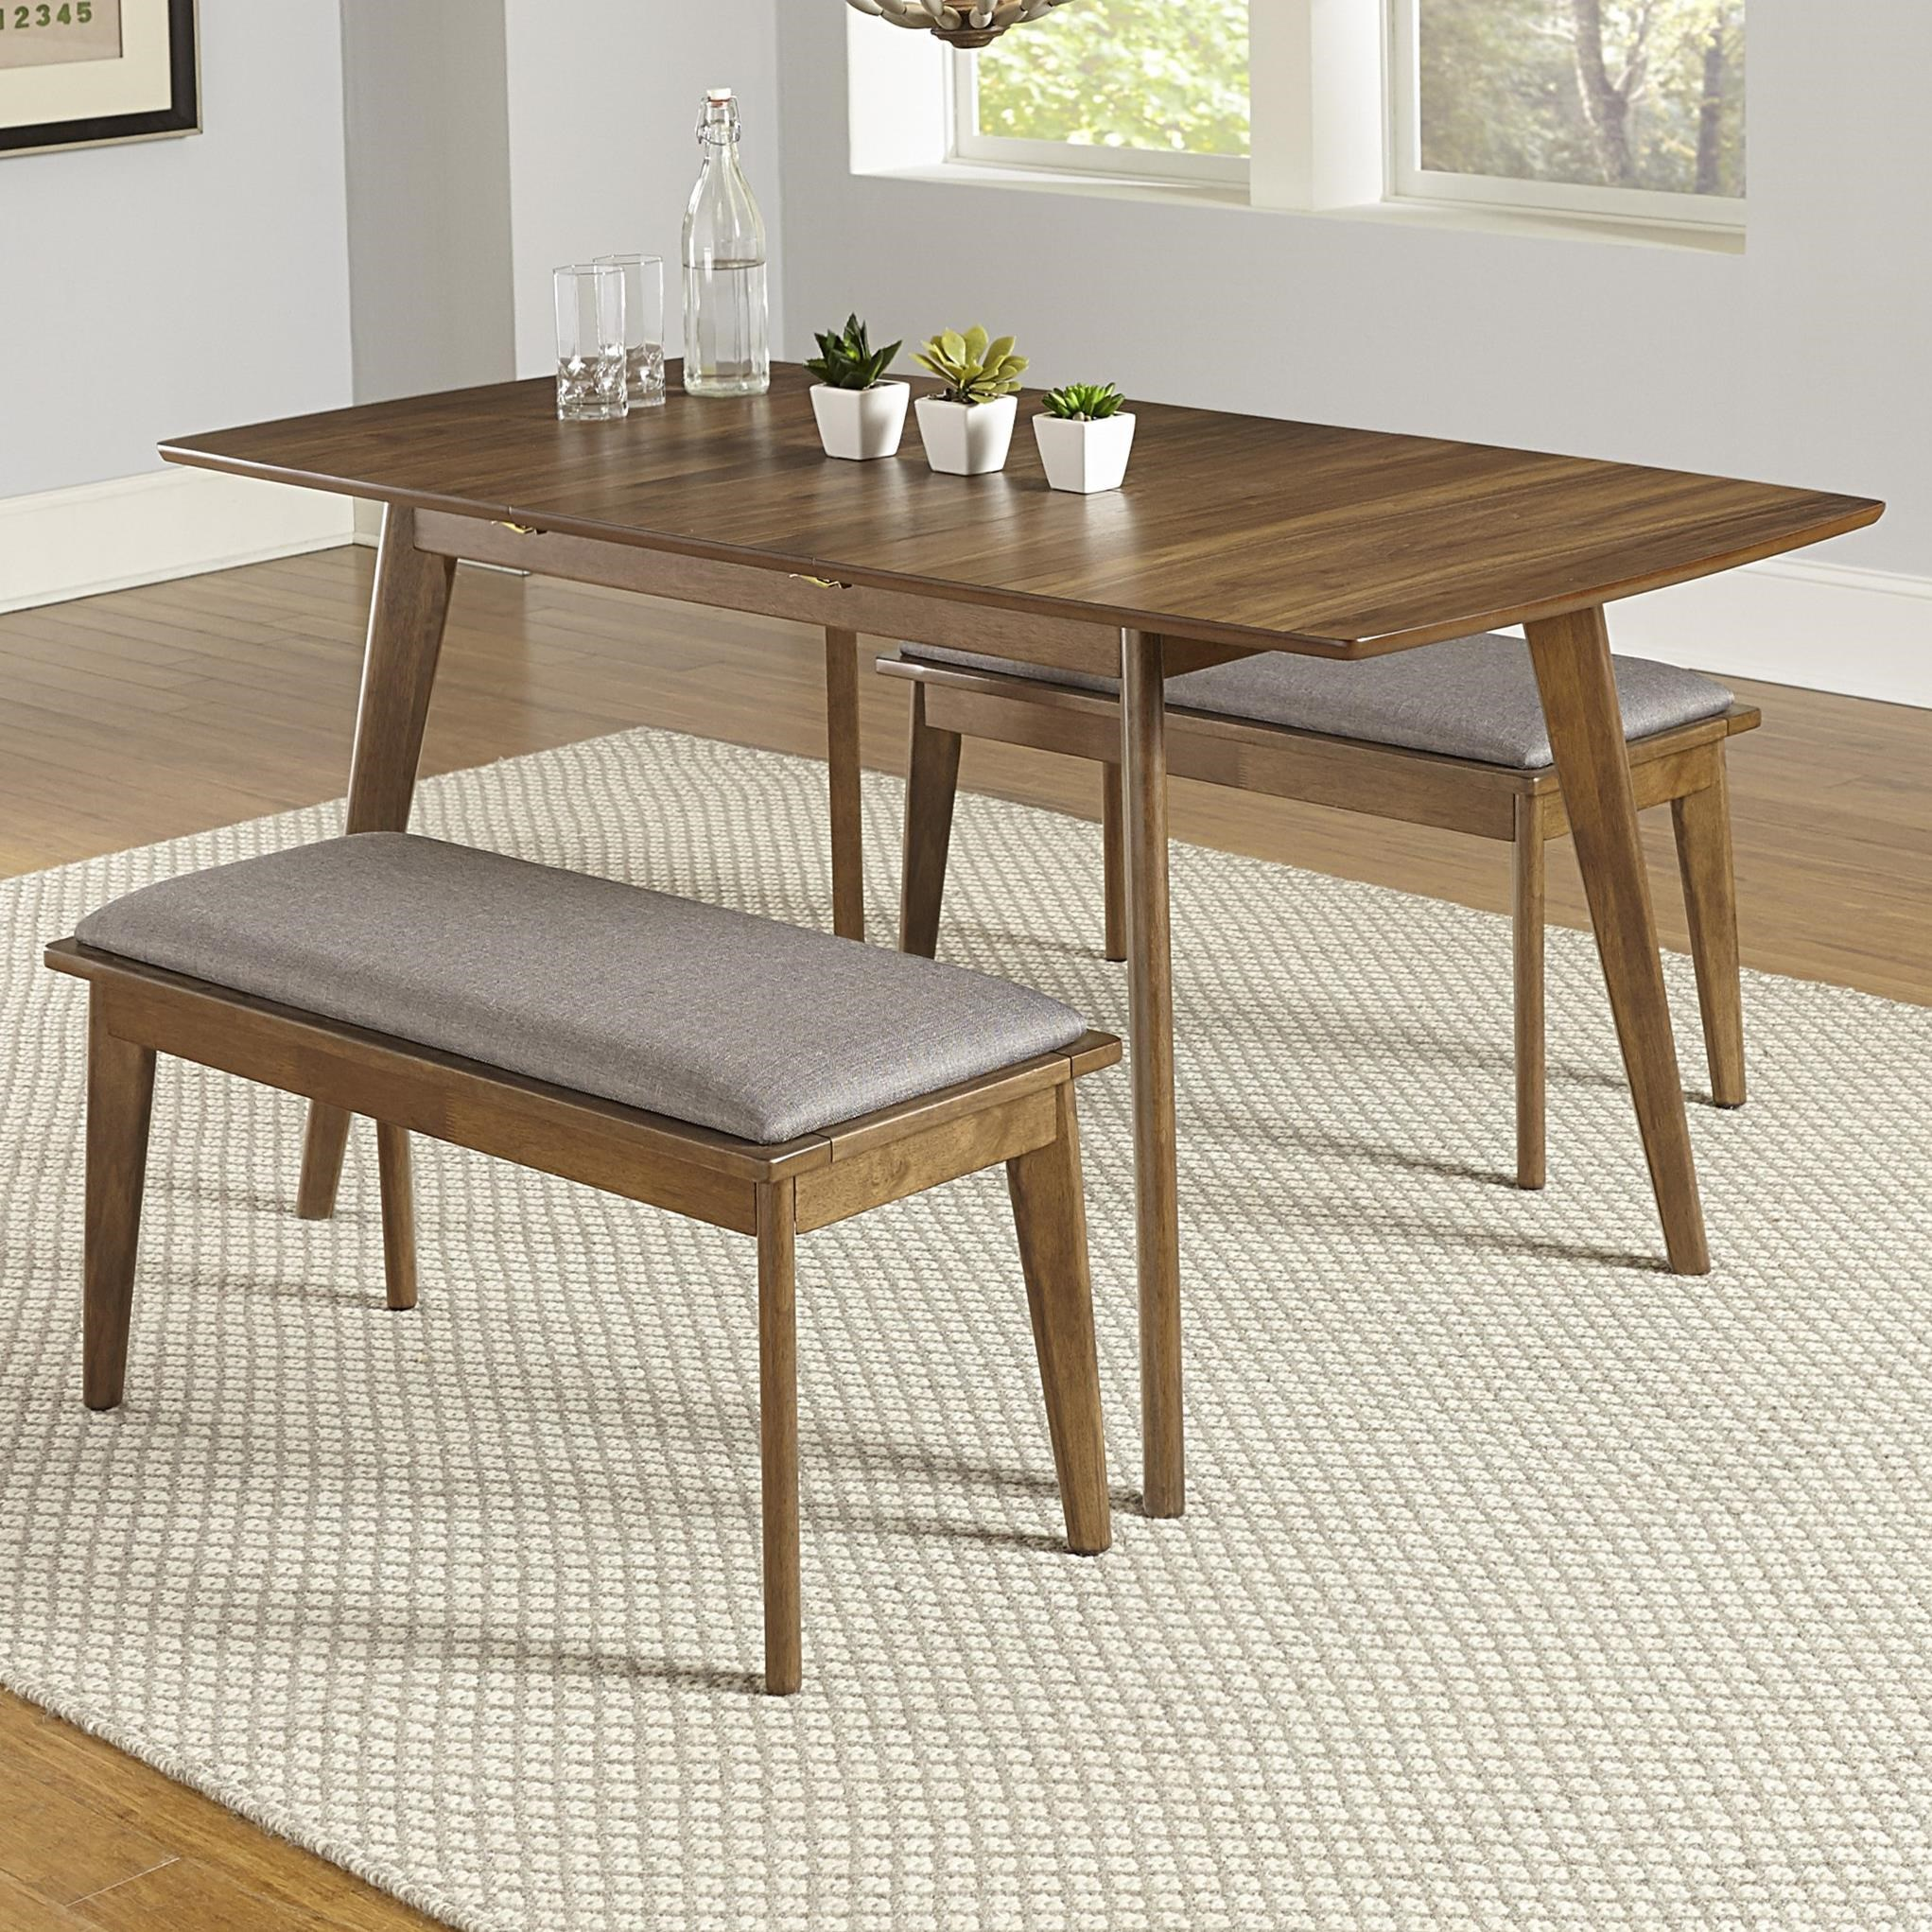 3-Piece Butterfly Table Set with 2 Benches